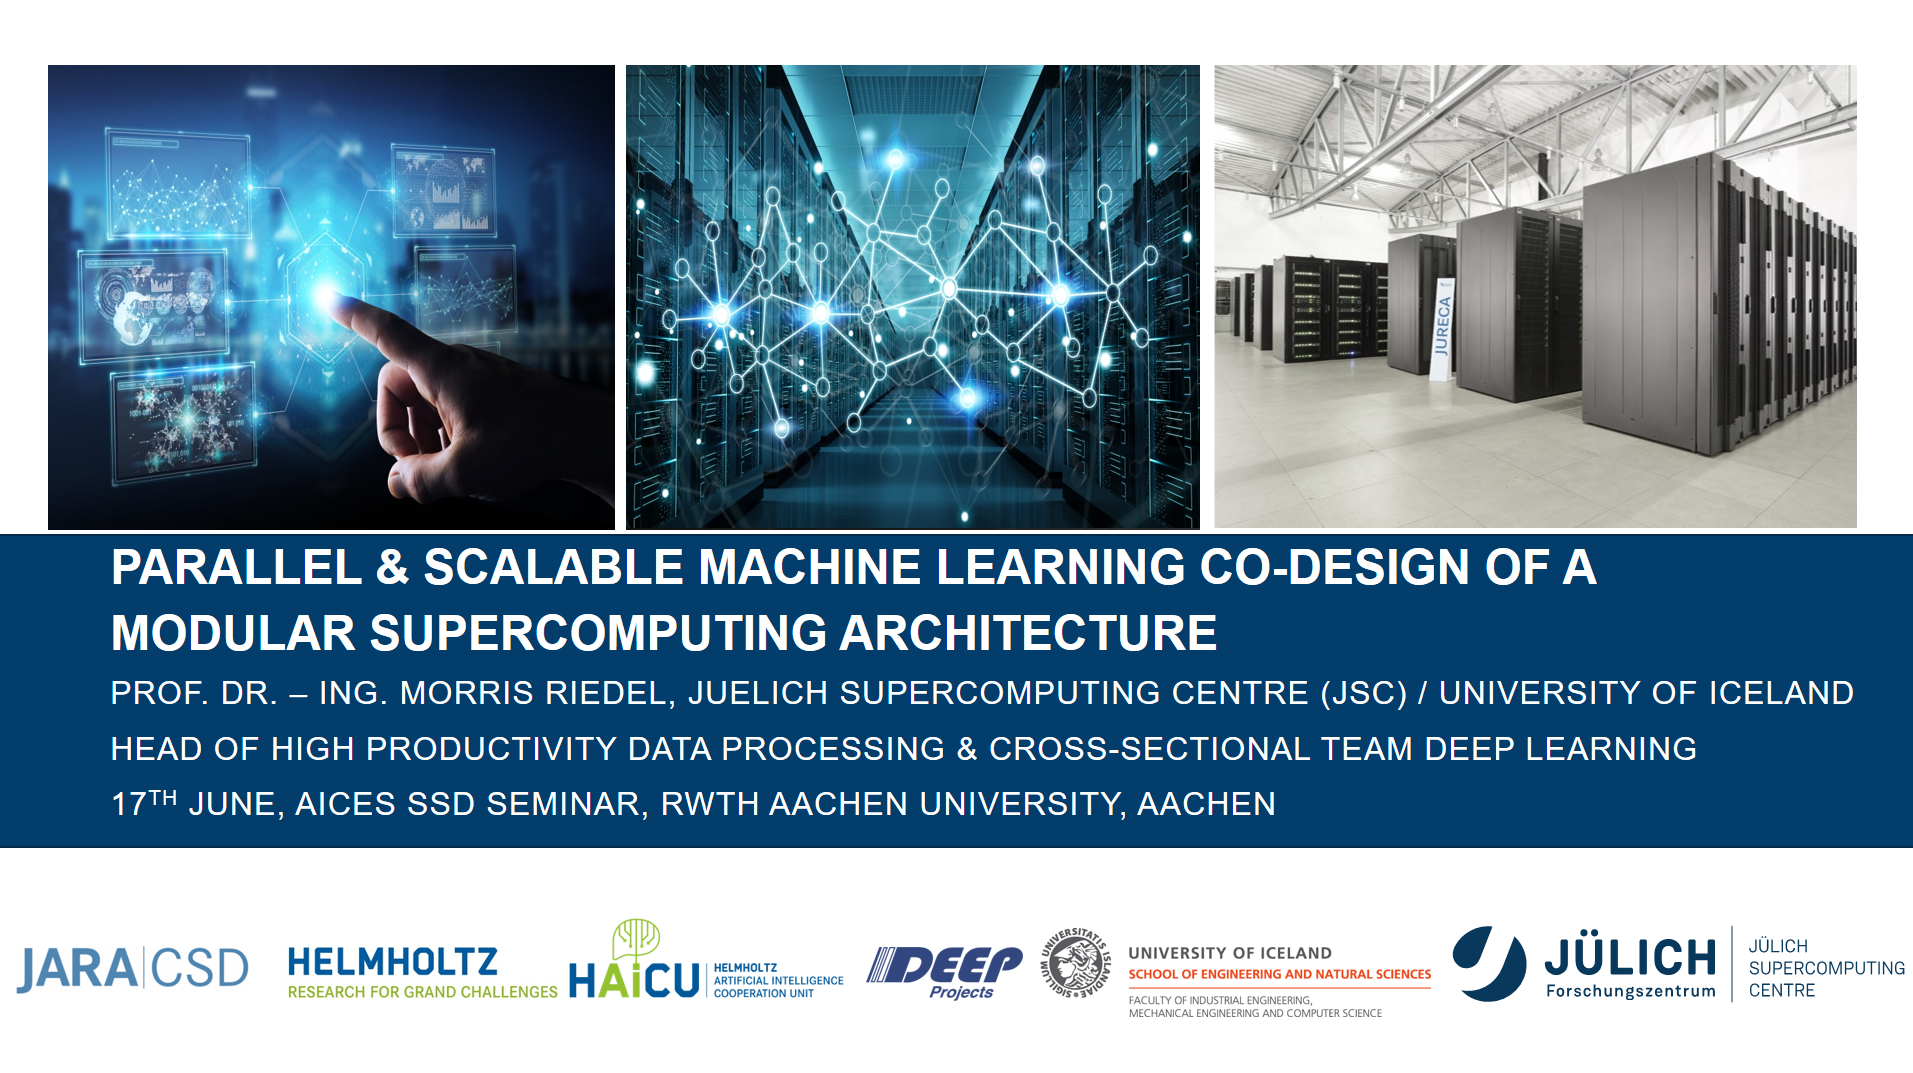 Parallel and Scalable Machine Learning Co-Design of a Modular Supercomputing Architecture